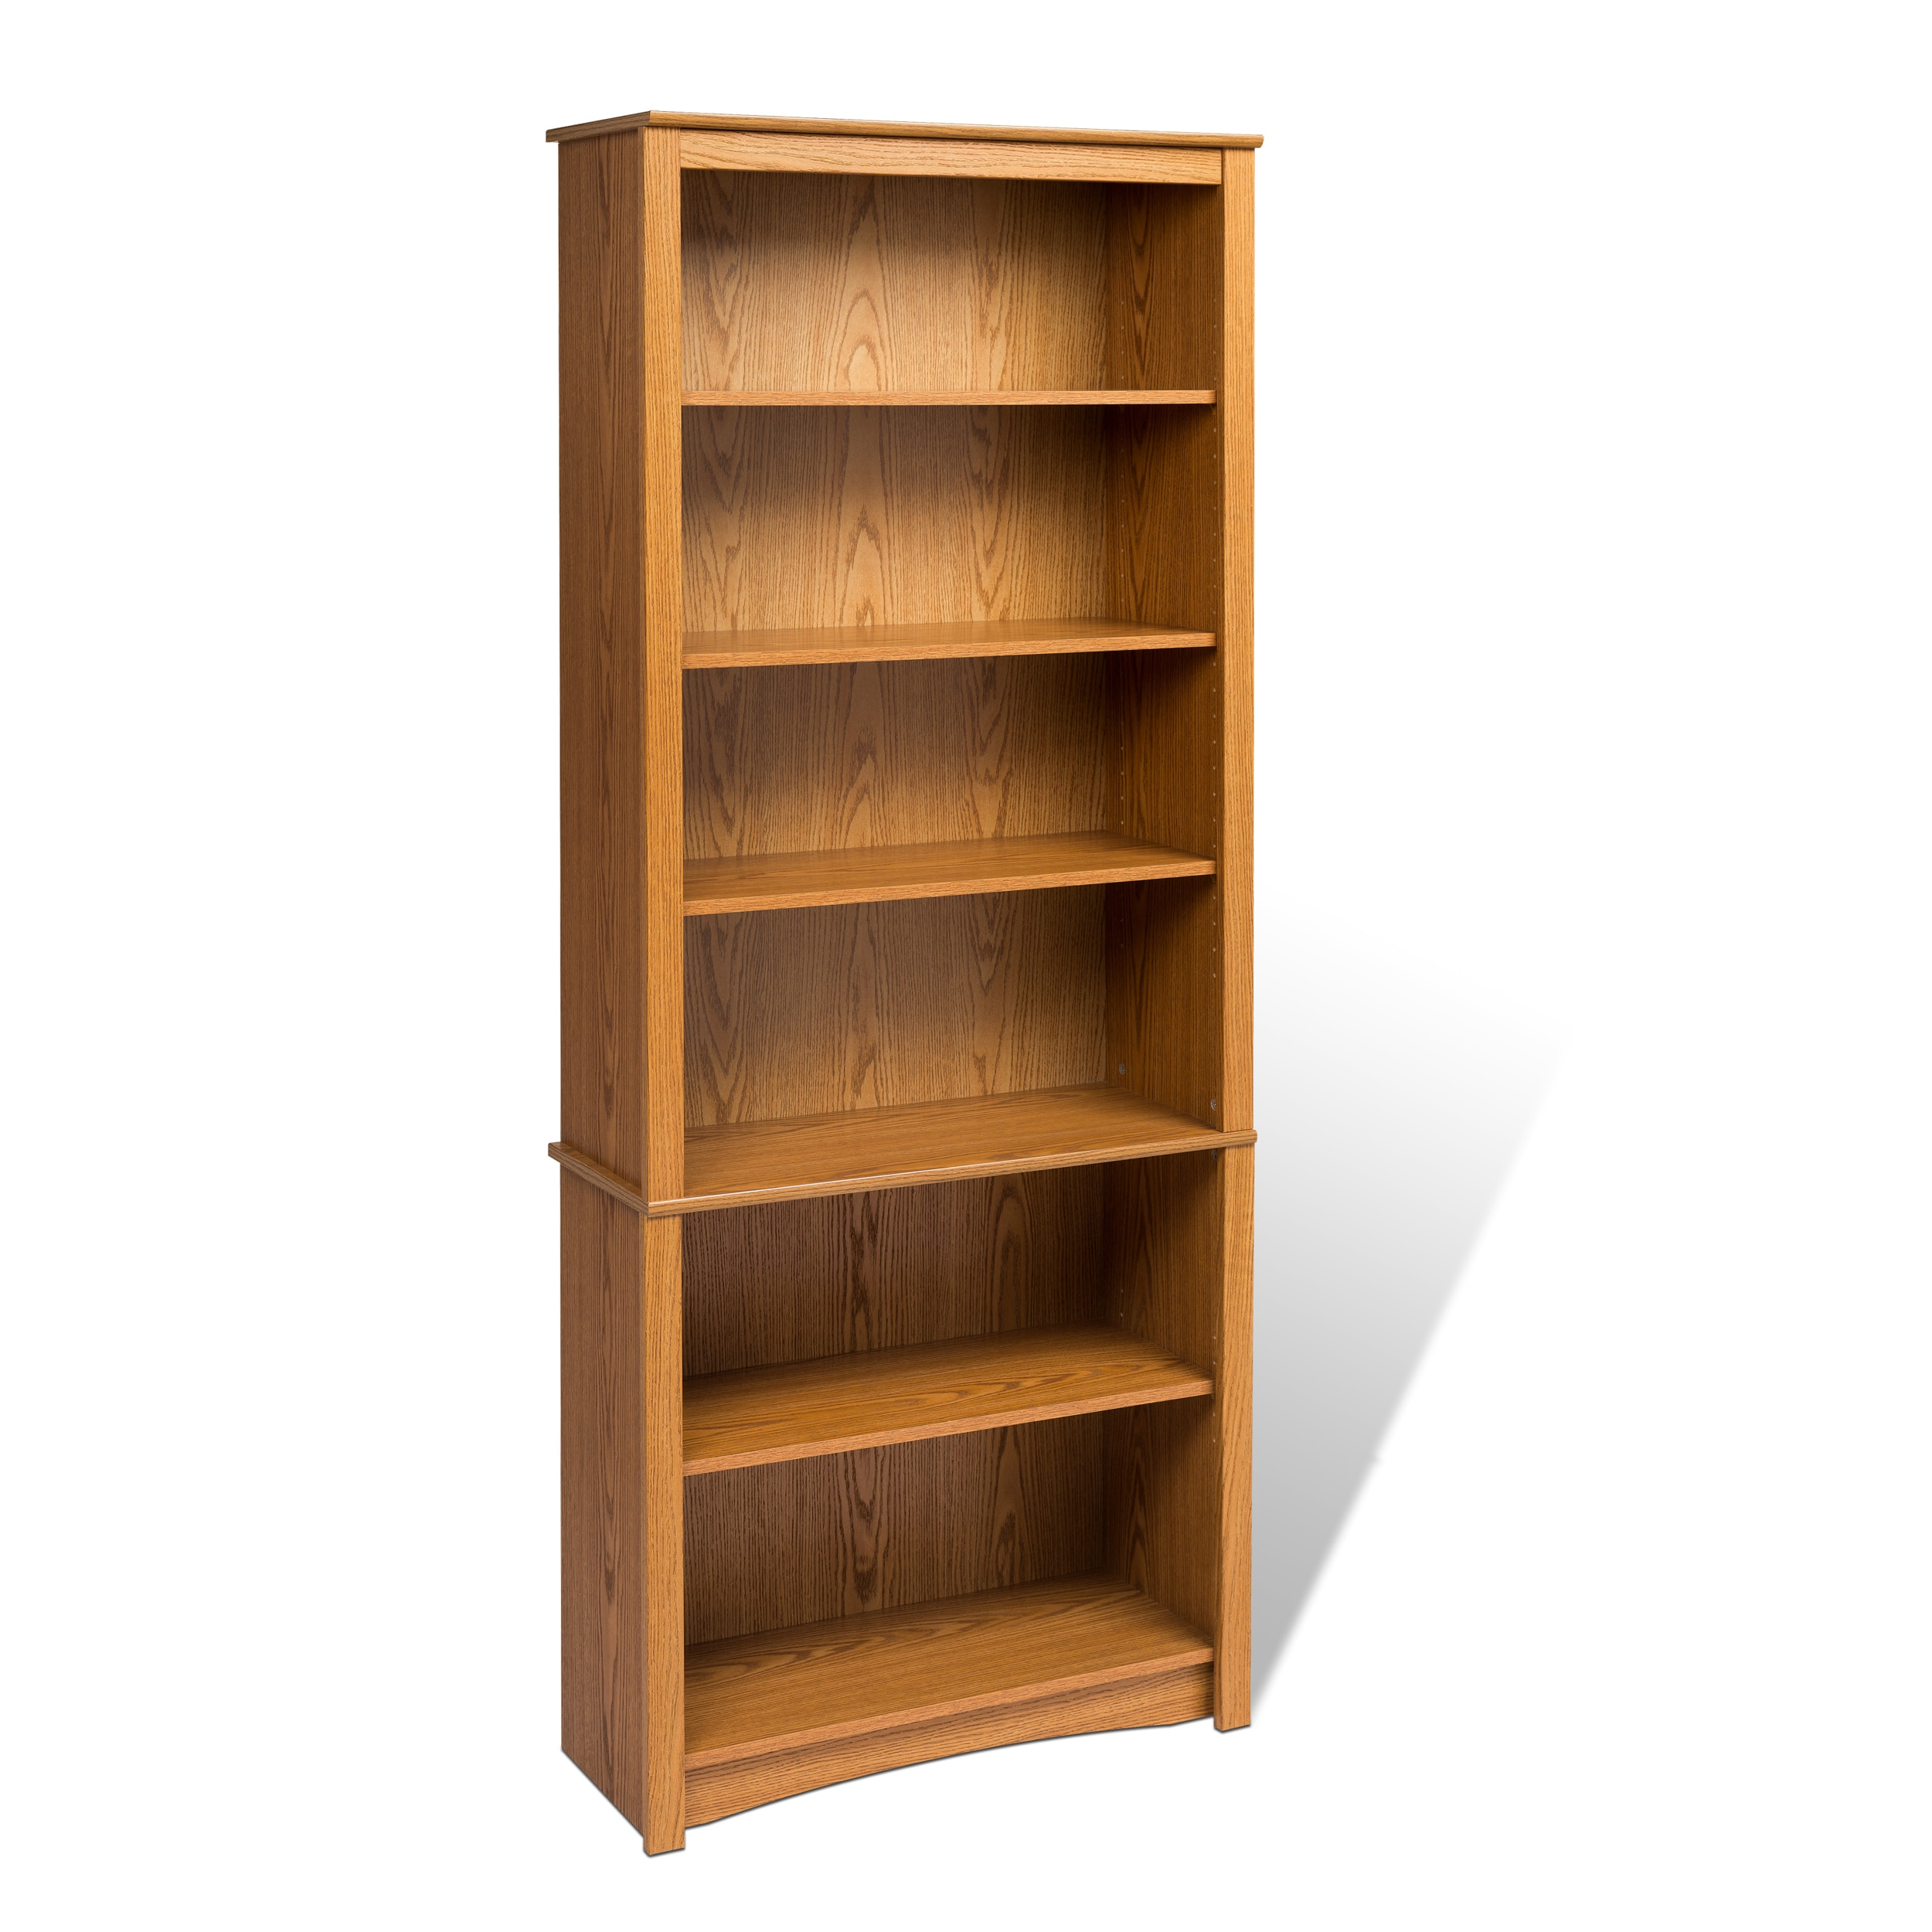 hayneedle bookcases birmingham birminghamexecutivebookcase shelf cfm master bookcase product executive